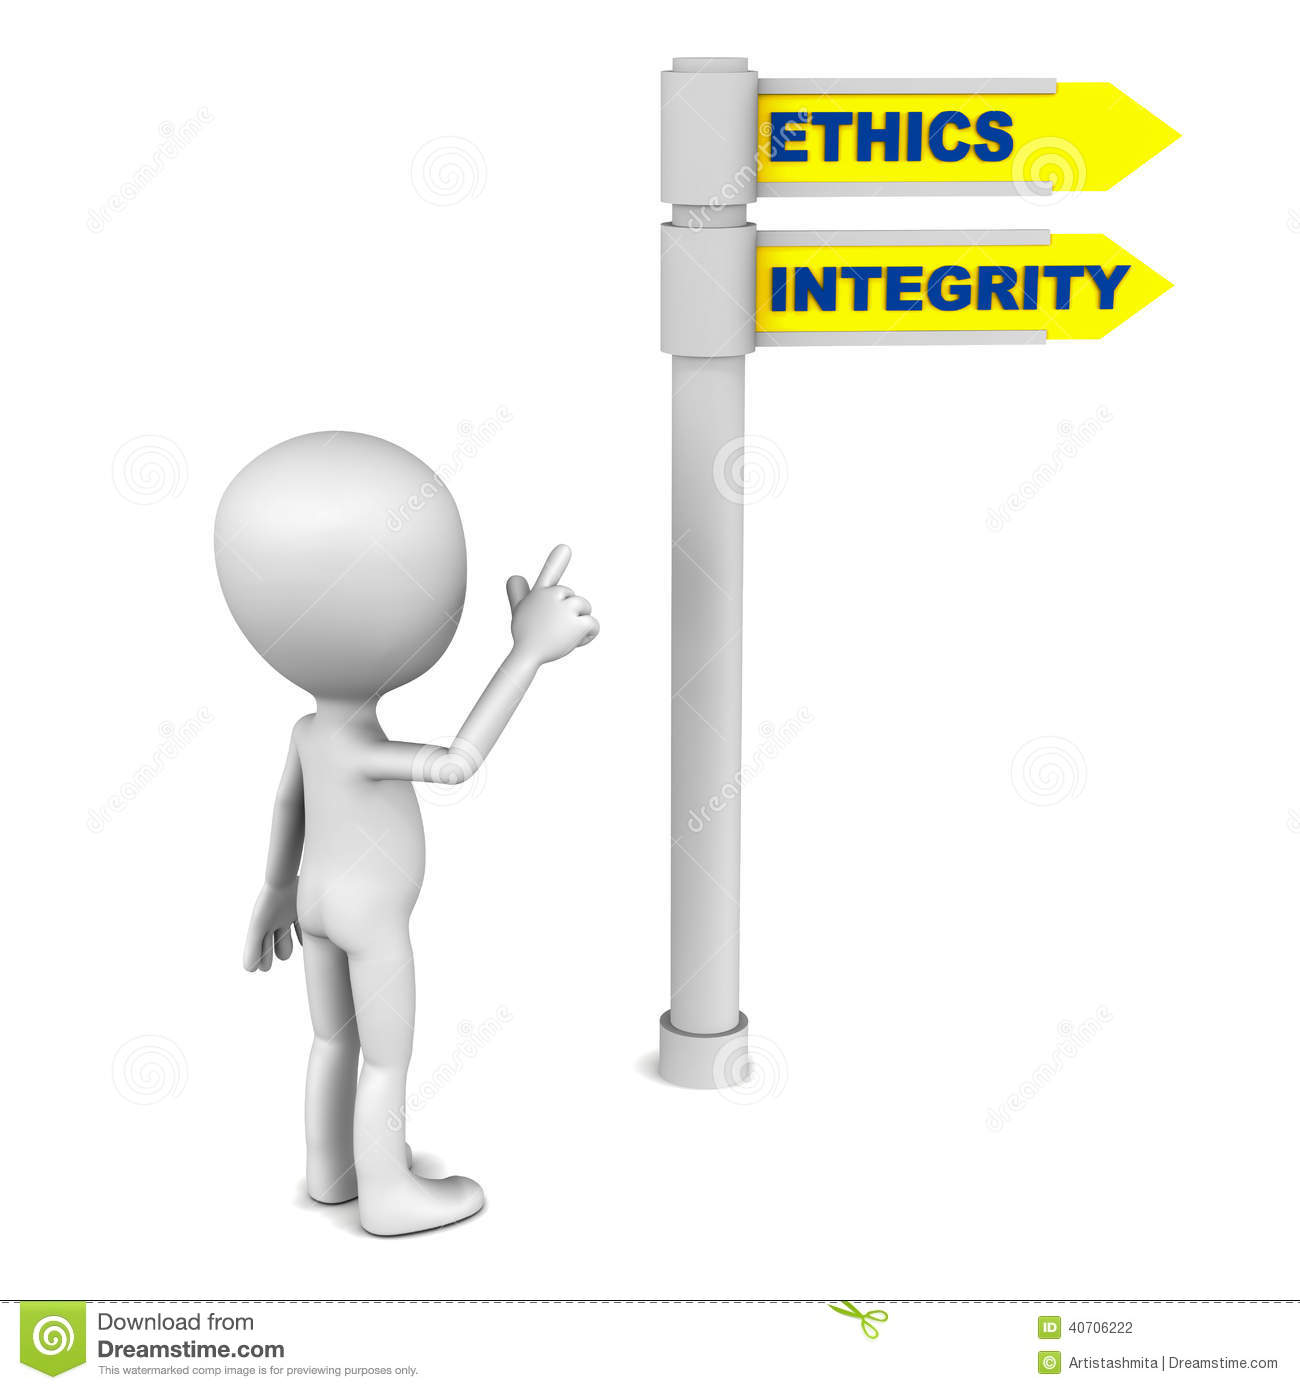 ethics integrity words road sign little man pointing to right way 40706222